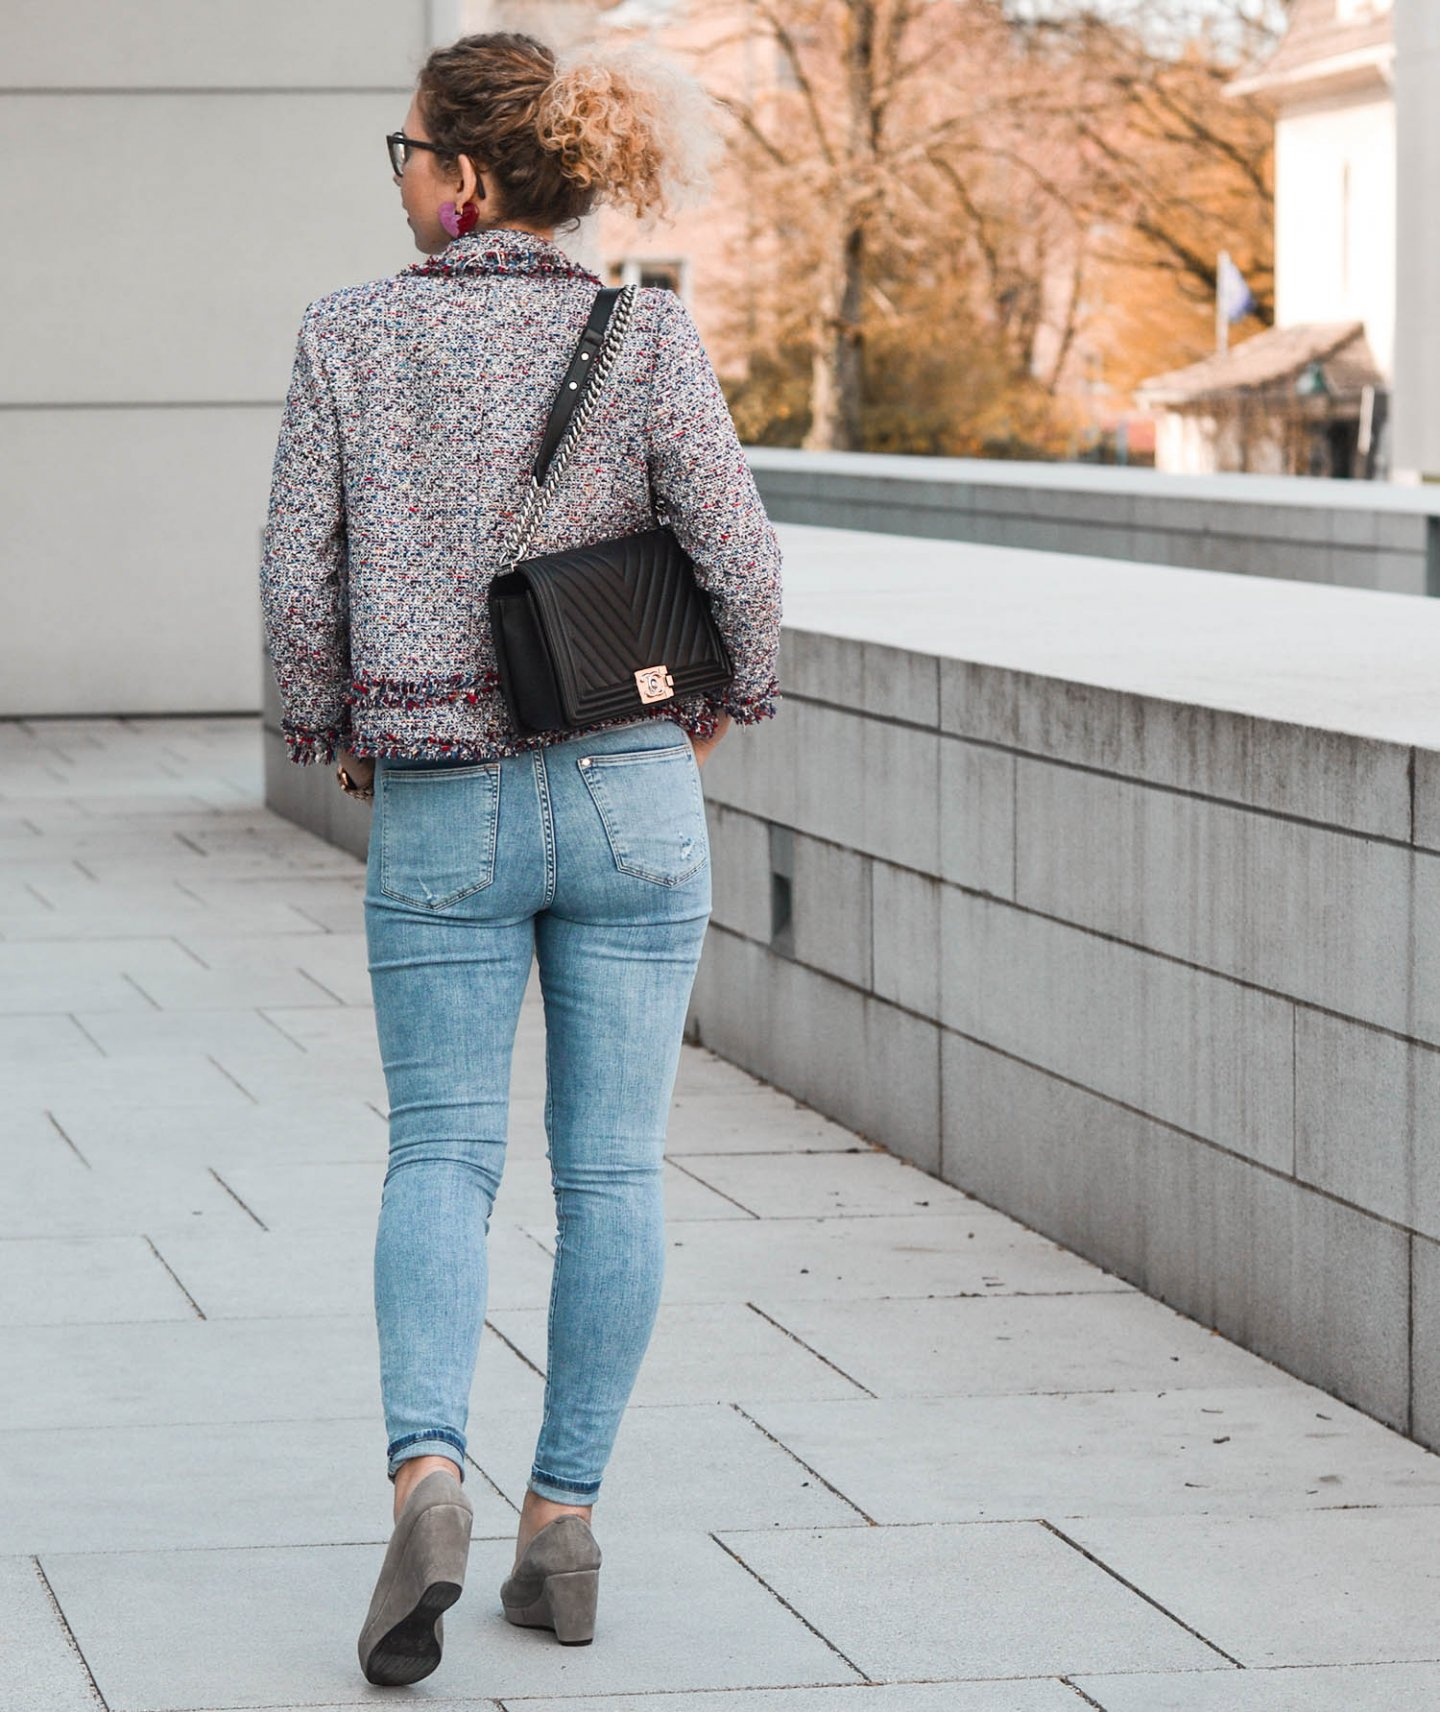 Chanel Boy Bag mit Tweed Blazer und Slim Jeans